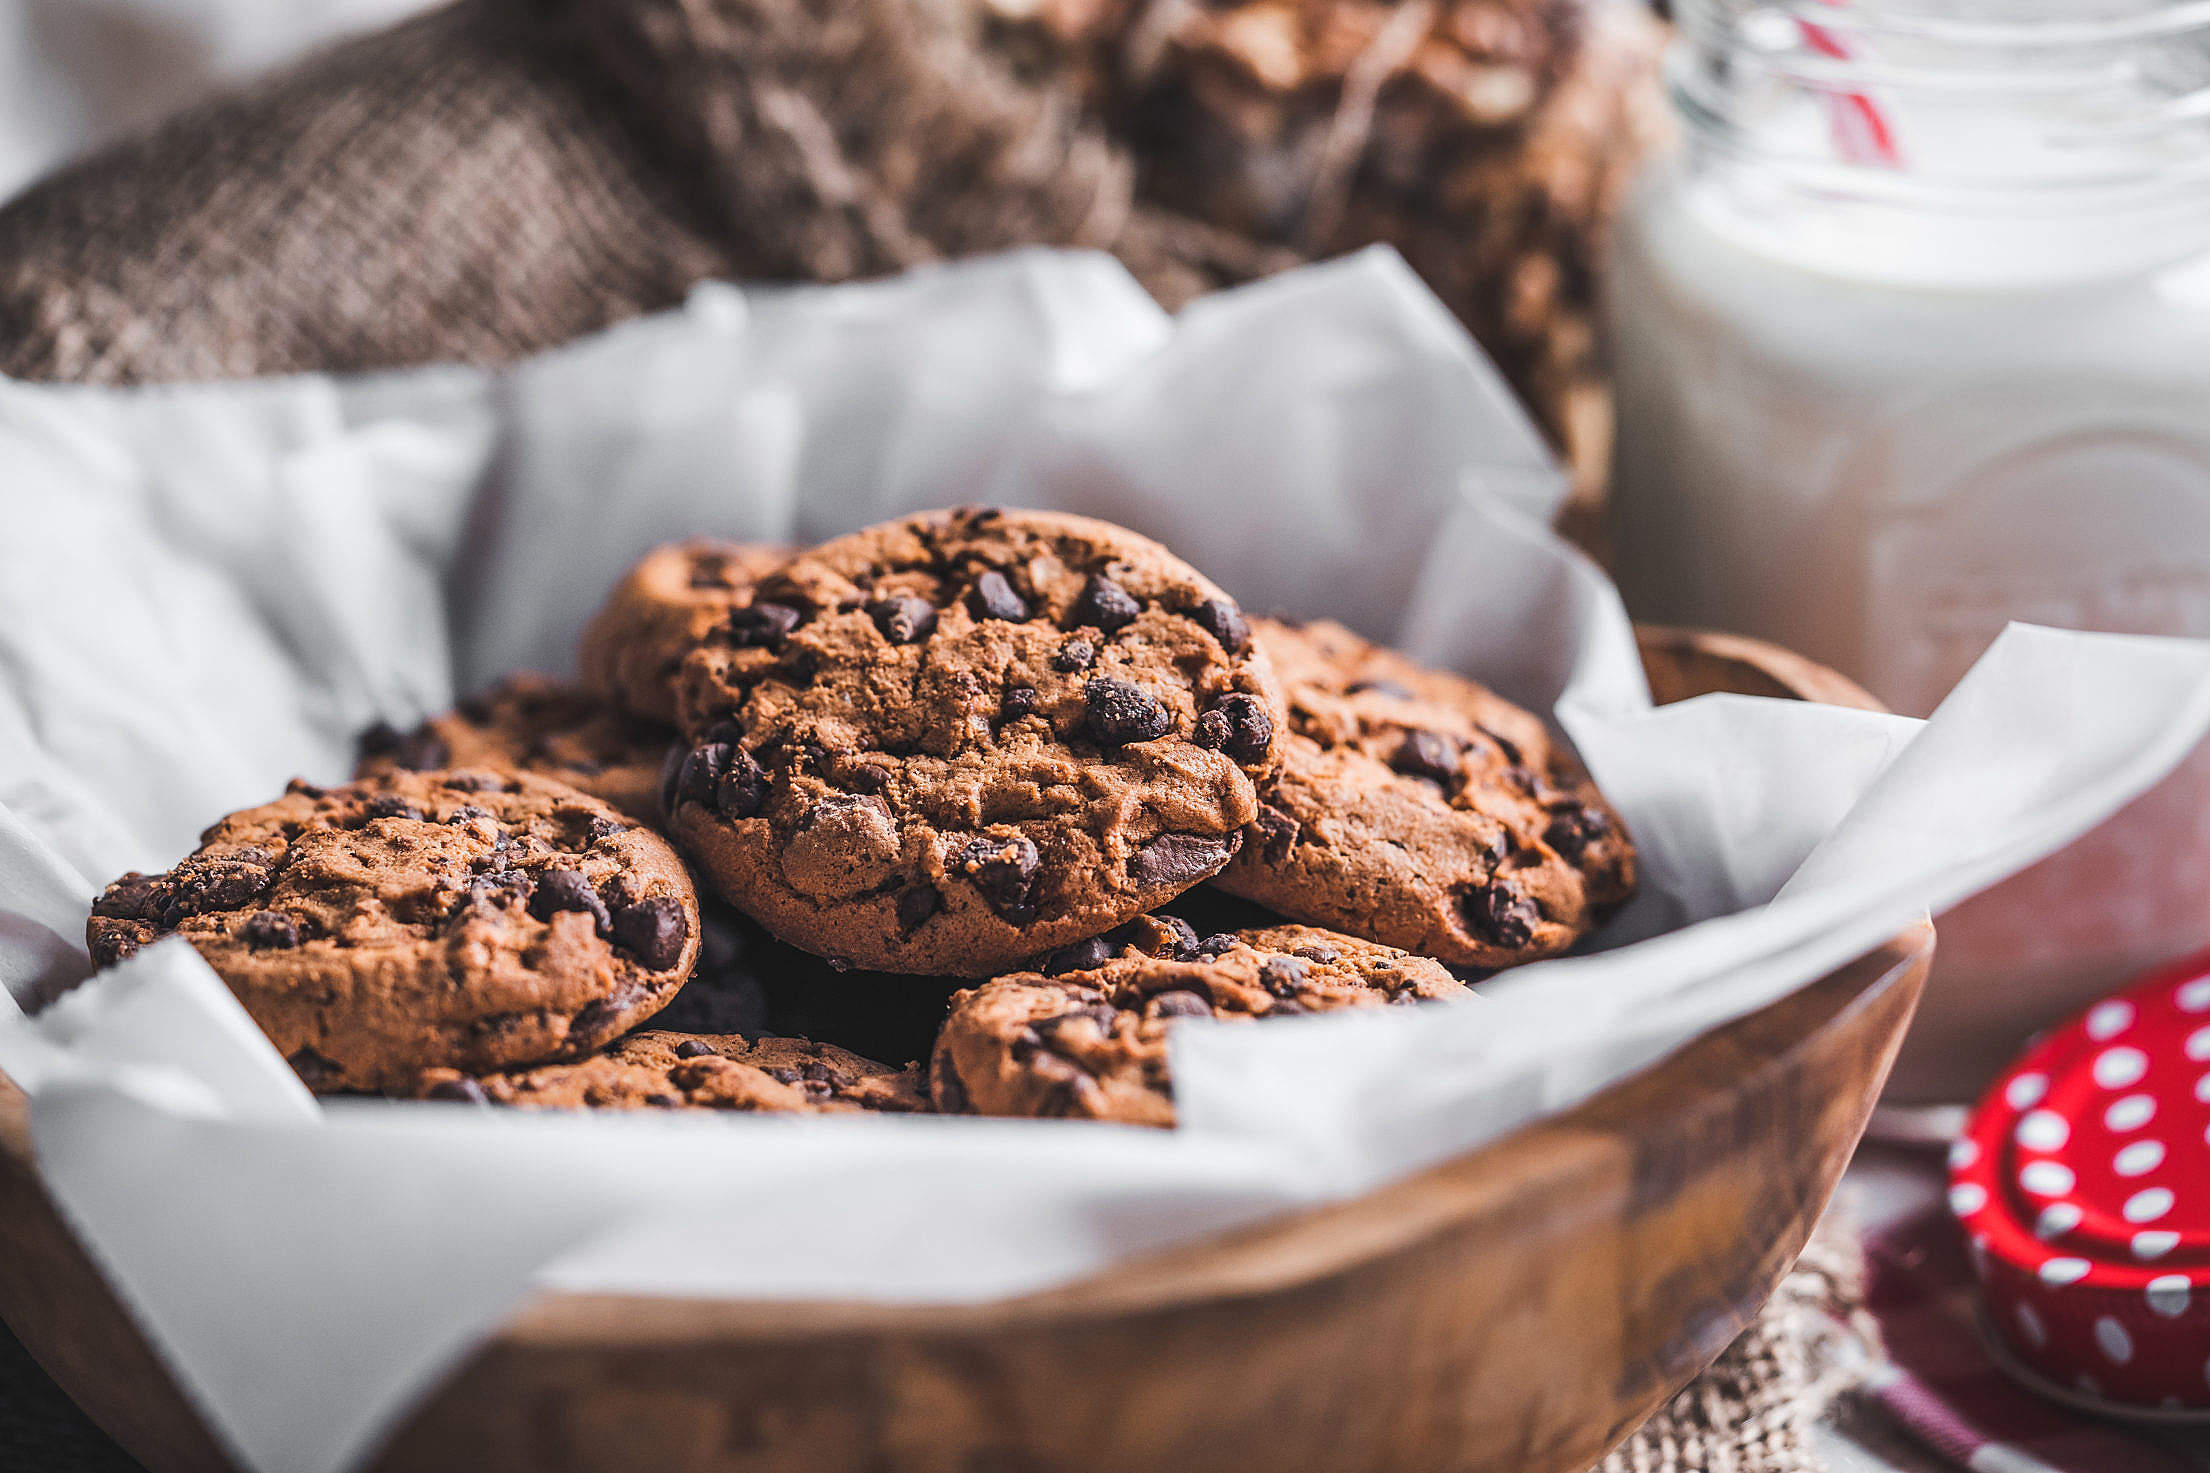 Chocolate Chip Cookies in a Basket Free Stock Photo